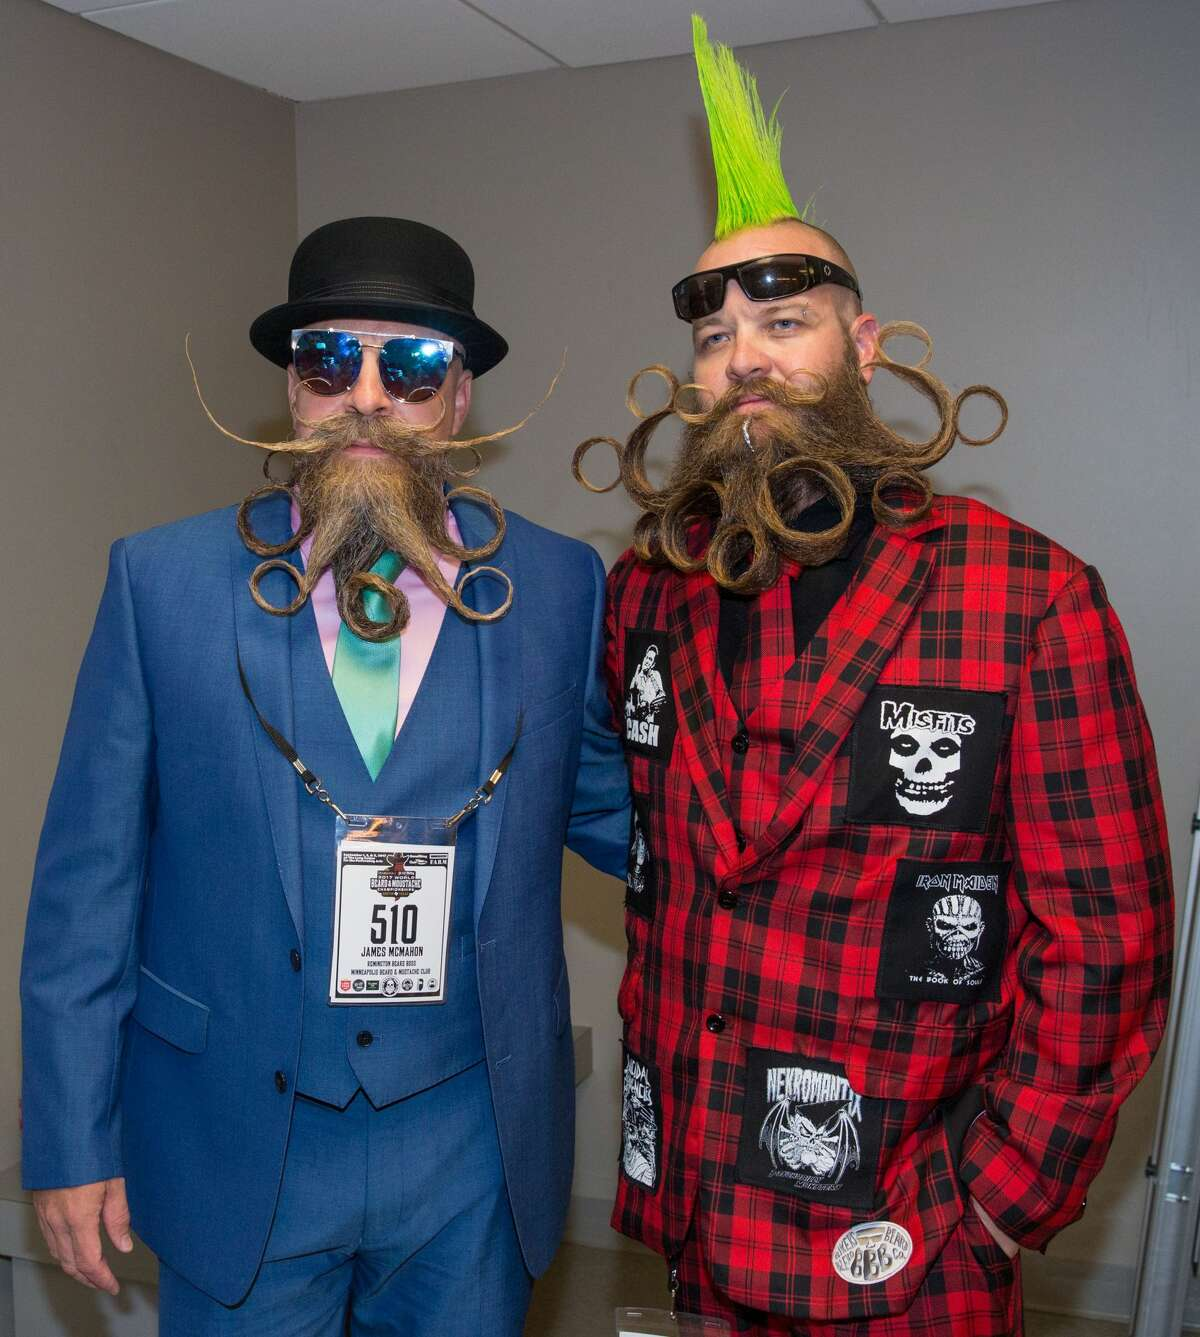 Competitors James McMahon (L) and John Banks attend the 2017 Remington Beard Boss World Beard & Moustache Championships held at the Long Center for the Performing Arts on September 3, 2017 in Austin, Texas. / AFP PHOTO / SUZANNE CORDEIRO (Photo credit should read SUZANNE CORDEIRO/AFP/Getty Images)